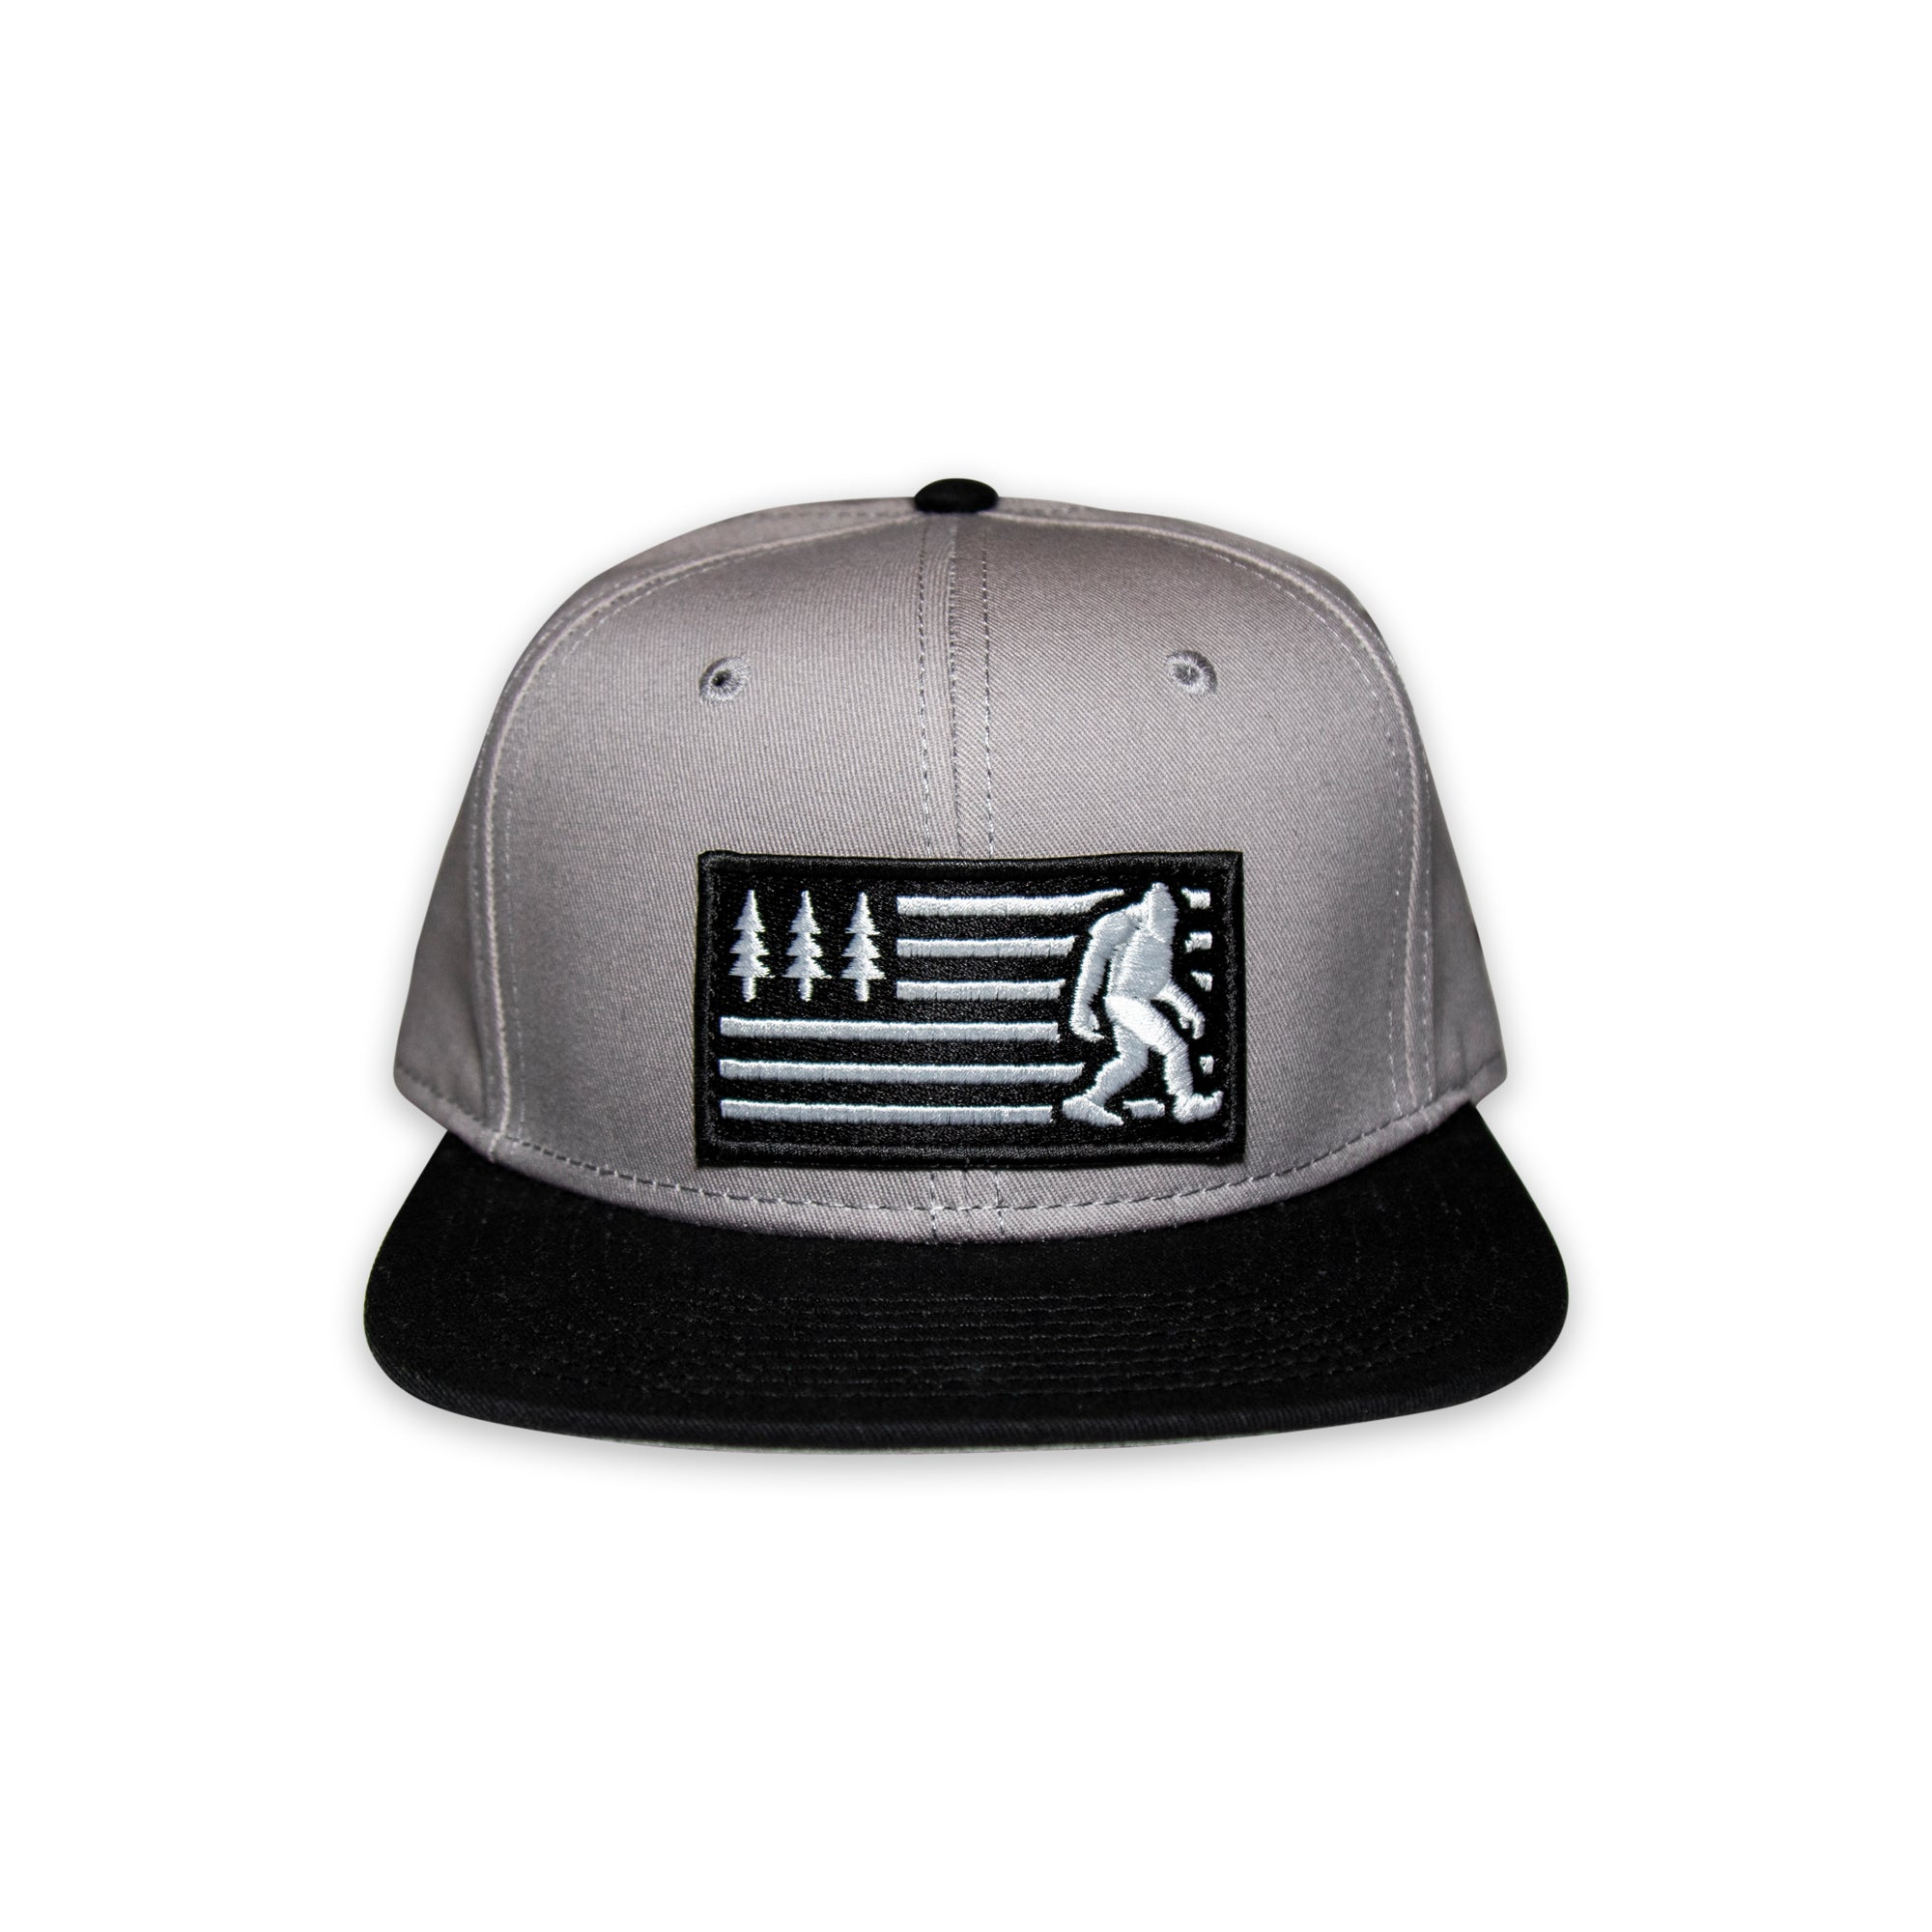 Youth 'Merica Trucker Hat